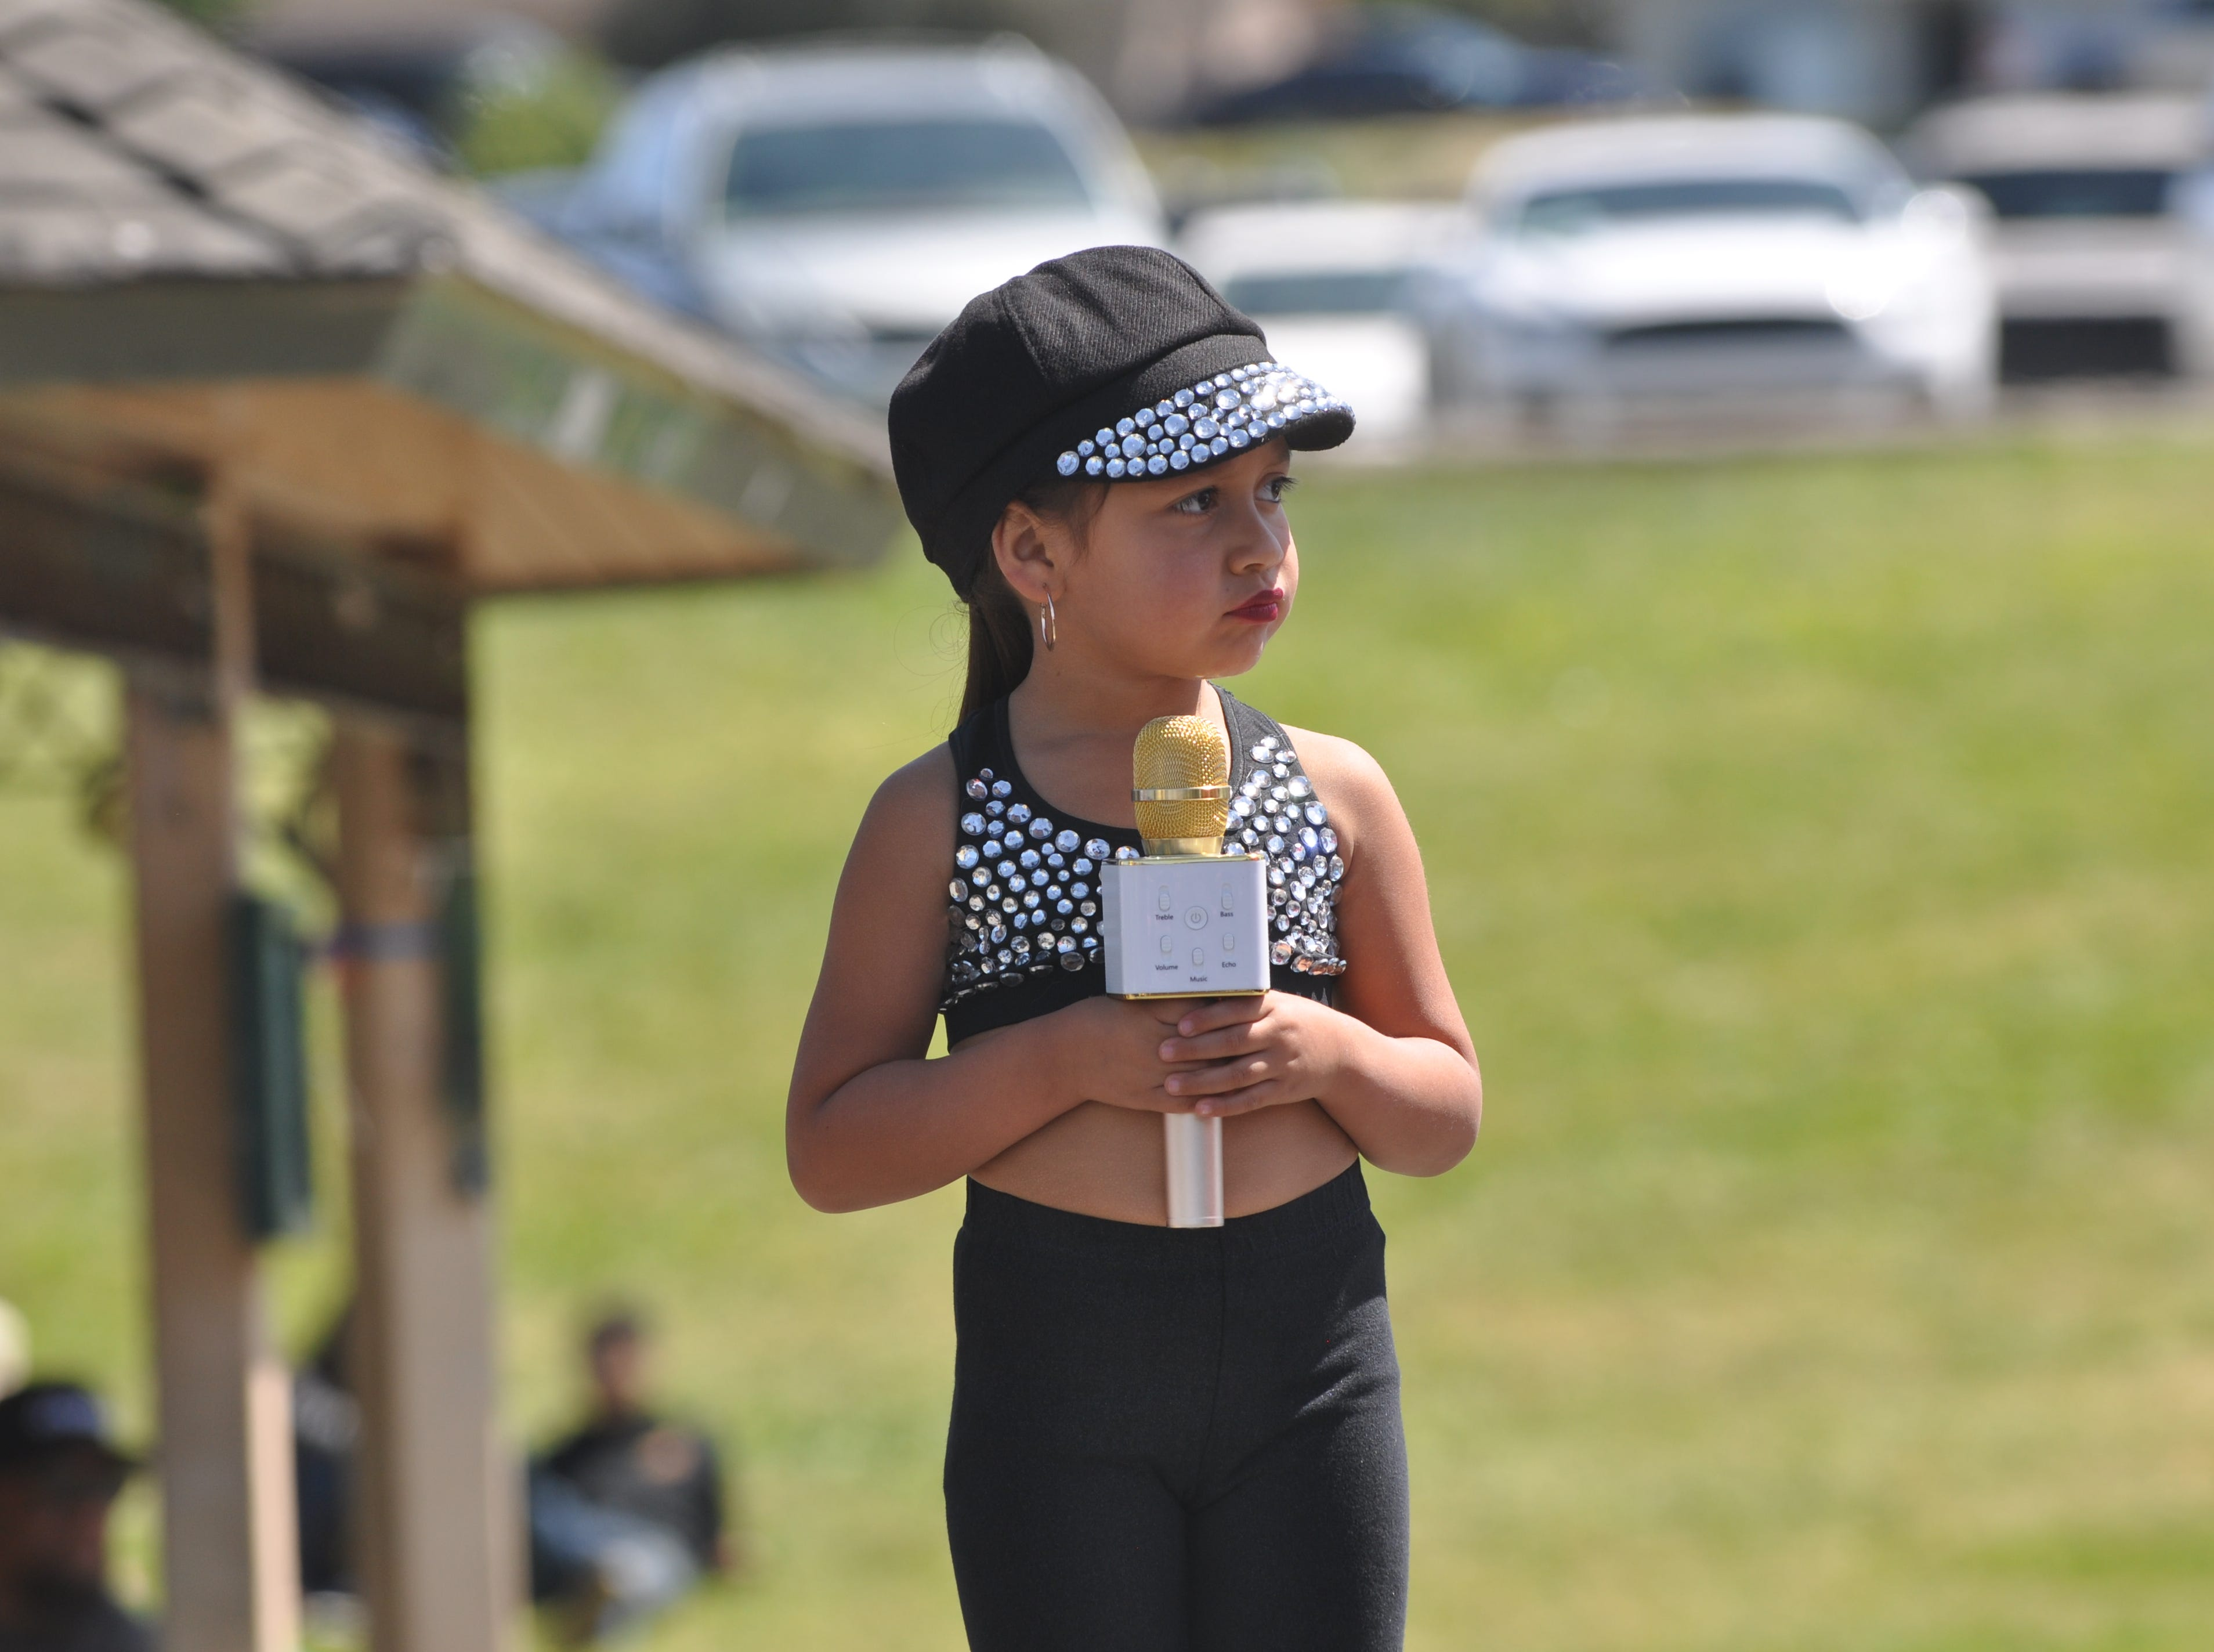 Alondra Jacinto, 5, performs on stage at the second annual Selena Tribute Festival in Salinas.